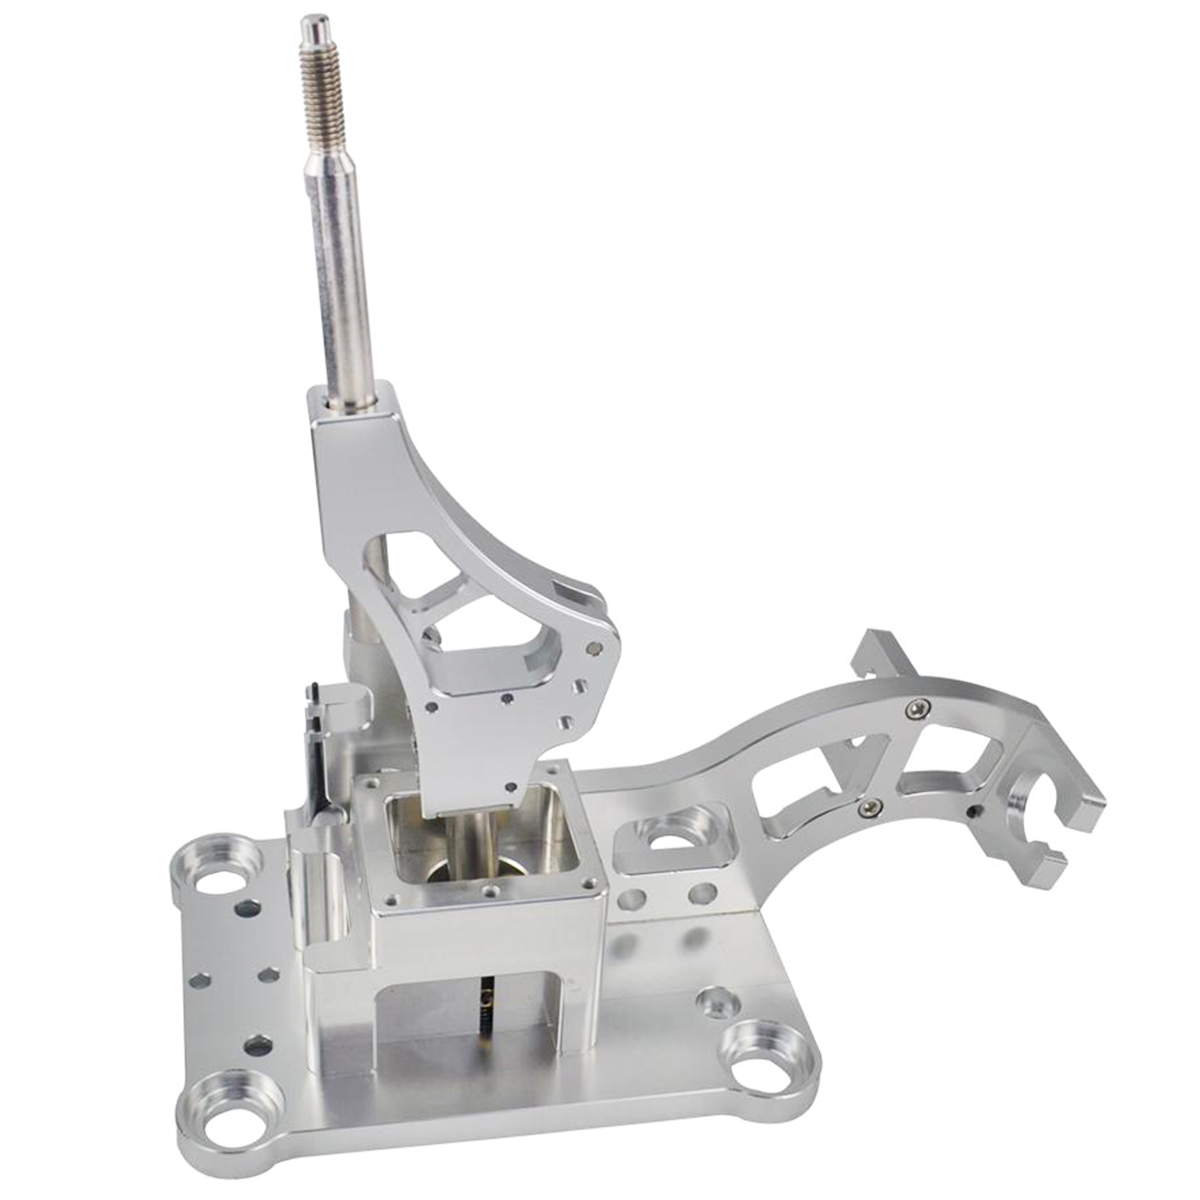 Billet Shifter Box For Acura RSX / K Series Engine Swap